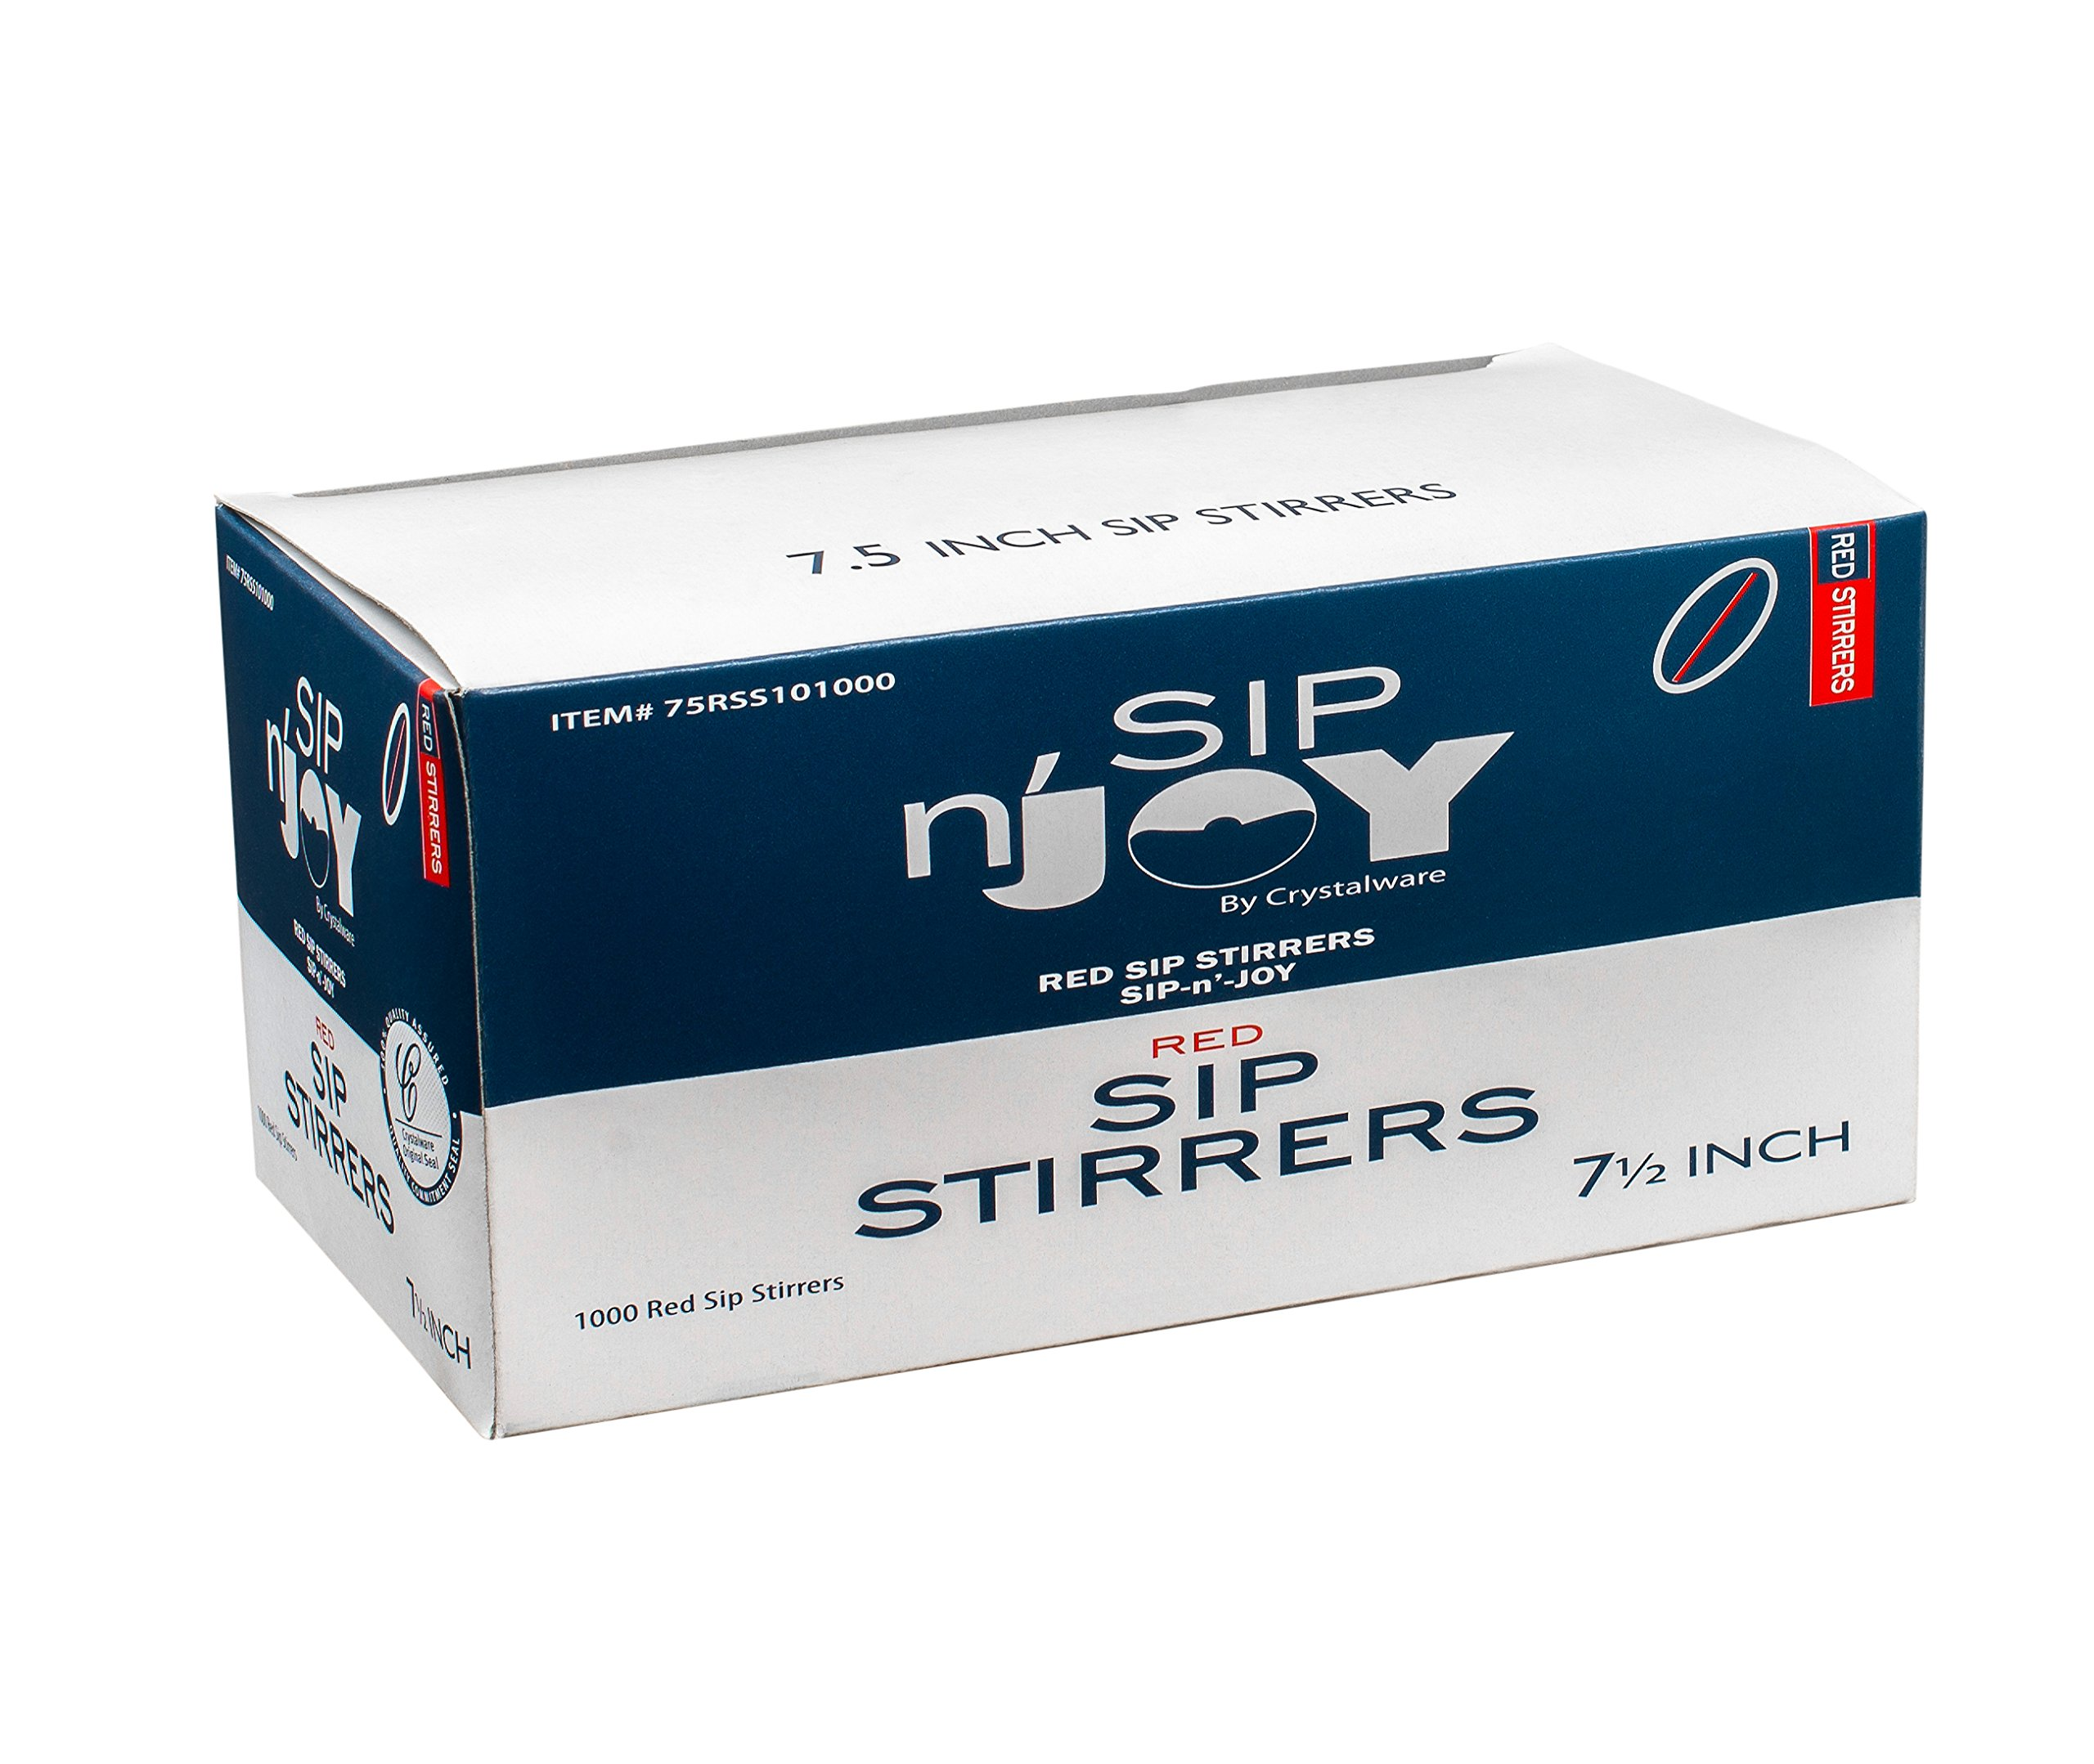 Crystalware Plastic Sip Stirrers, Cocktail and Coffee Stirrers, 7 1/2 Inch 1000/box, Red by Crystalware (Image #4)